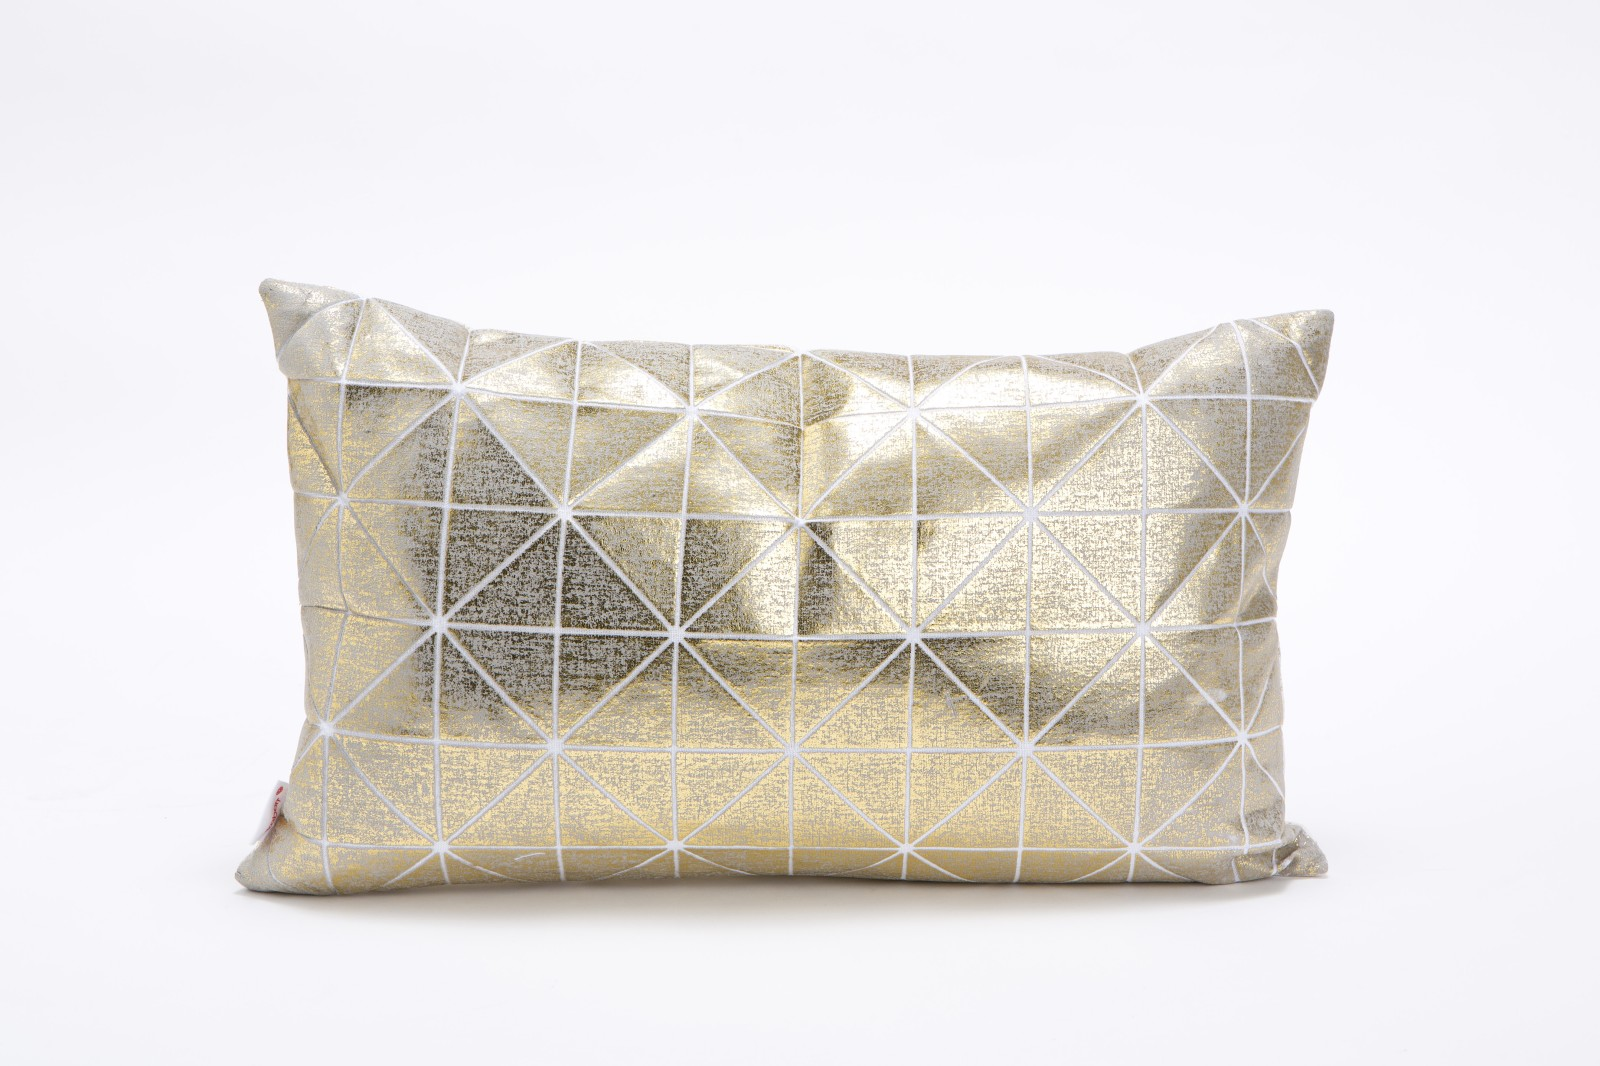 Bling Origami Rectangular Cushion Cover Bling Grey & Gold s